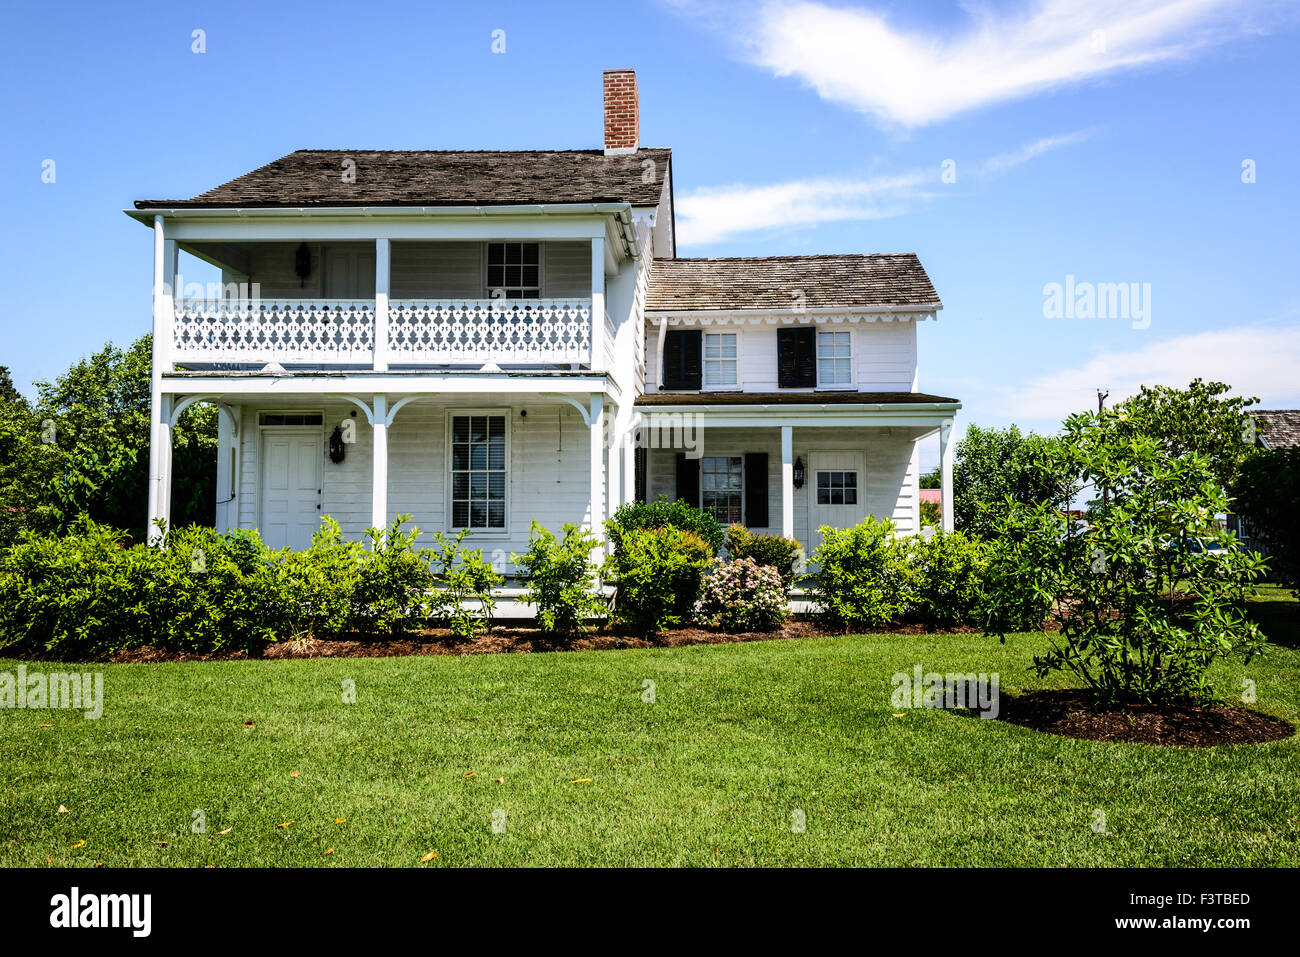 Higgins House, Navy Point Historic Houses, Chesapeake Bay Maritime Museum, St. Michaels, Maryland Stock Photo